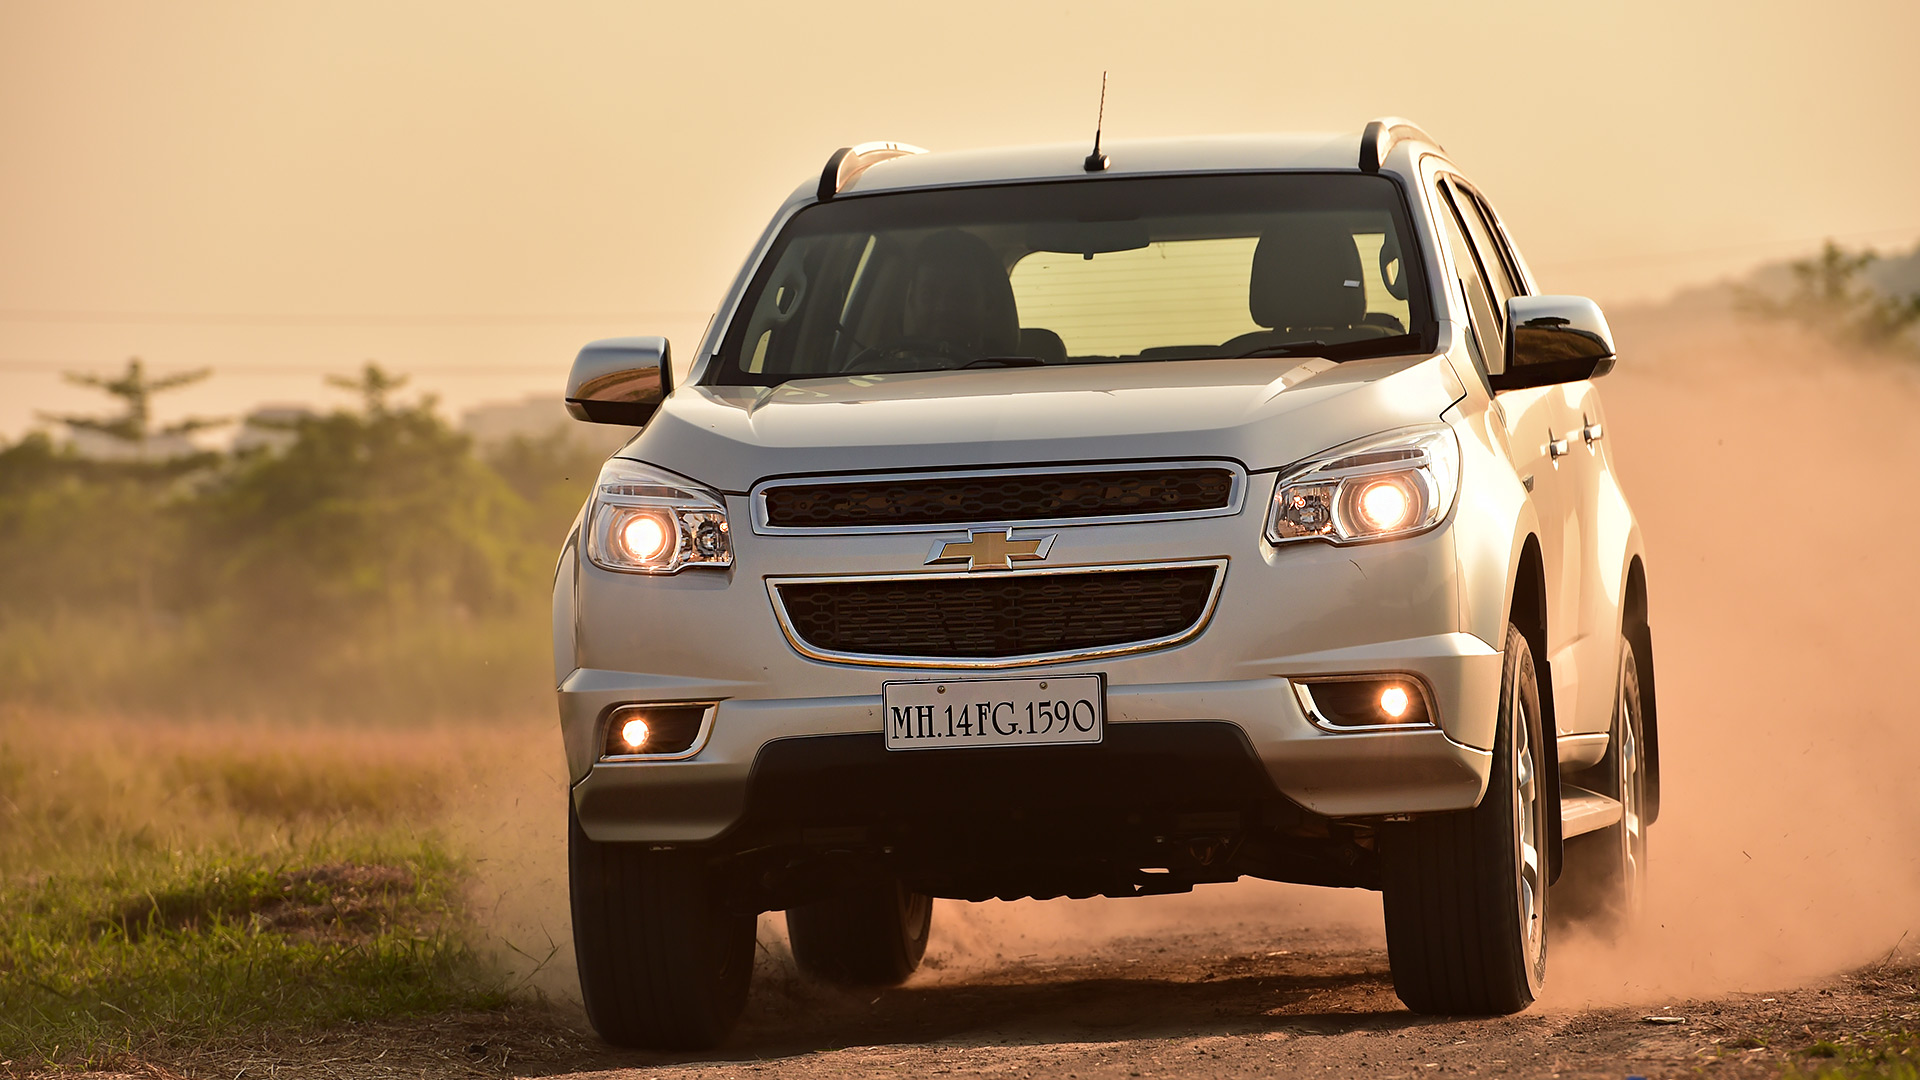 Chevrolet Trailblazer 2015 LTZ Exterior Car s Overdrive